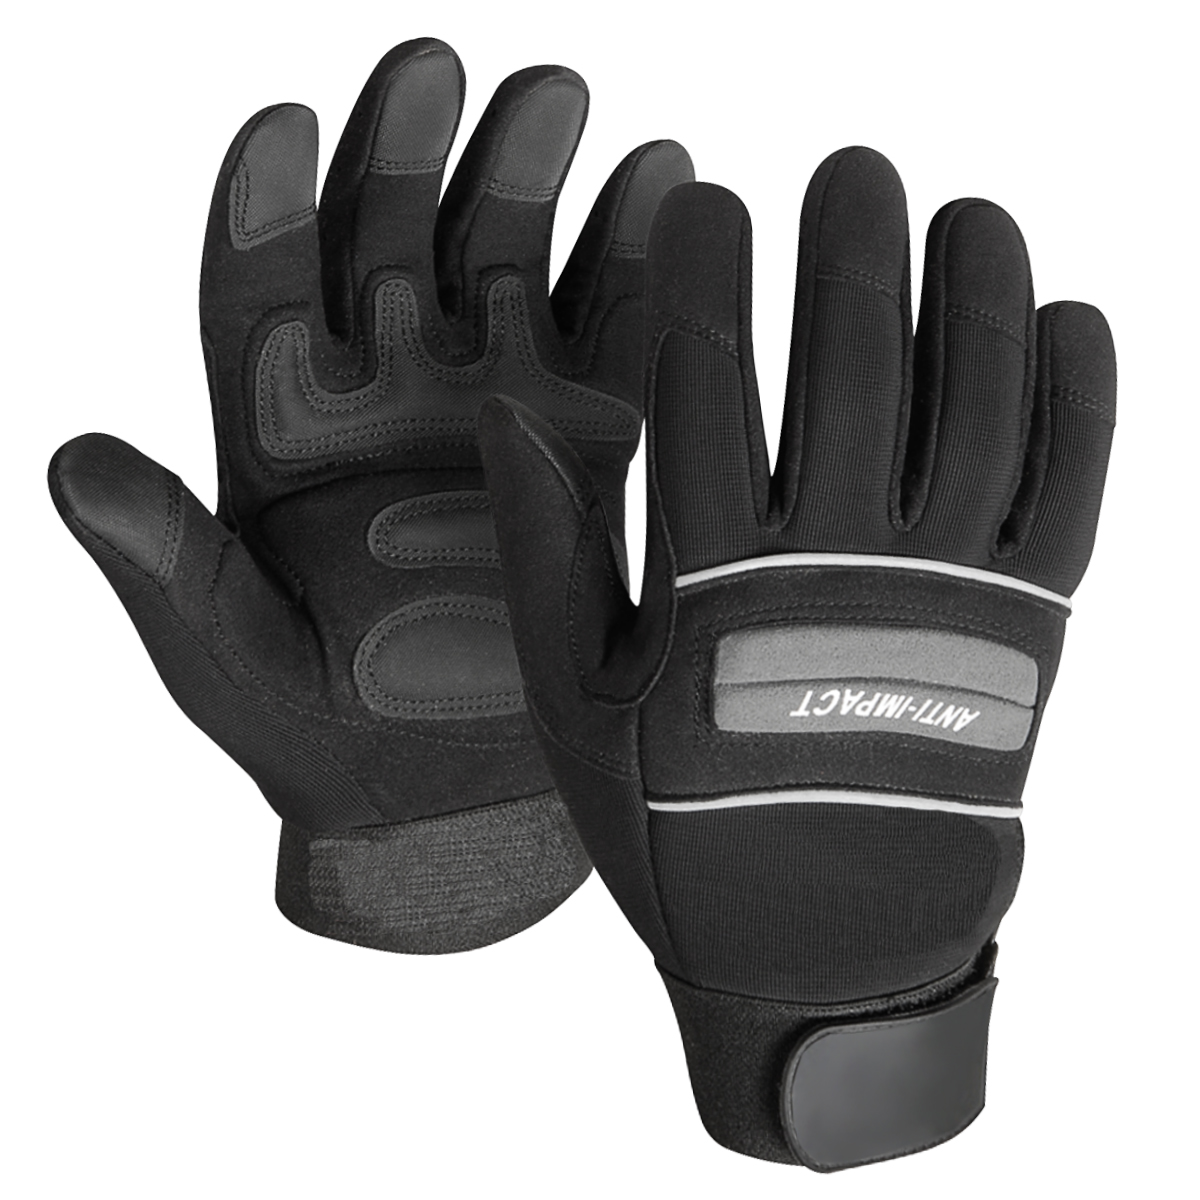 LD-932 Mechanics Gloves Synthetic Leather